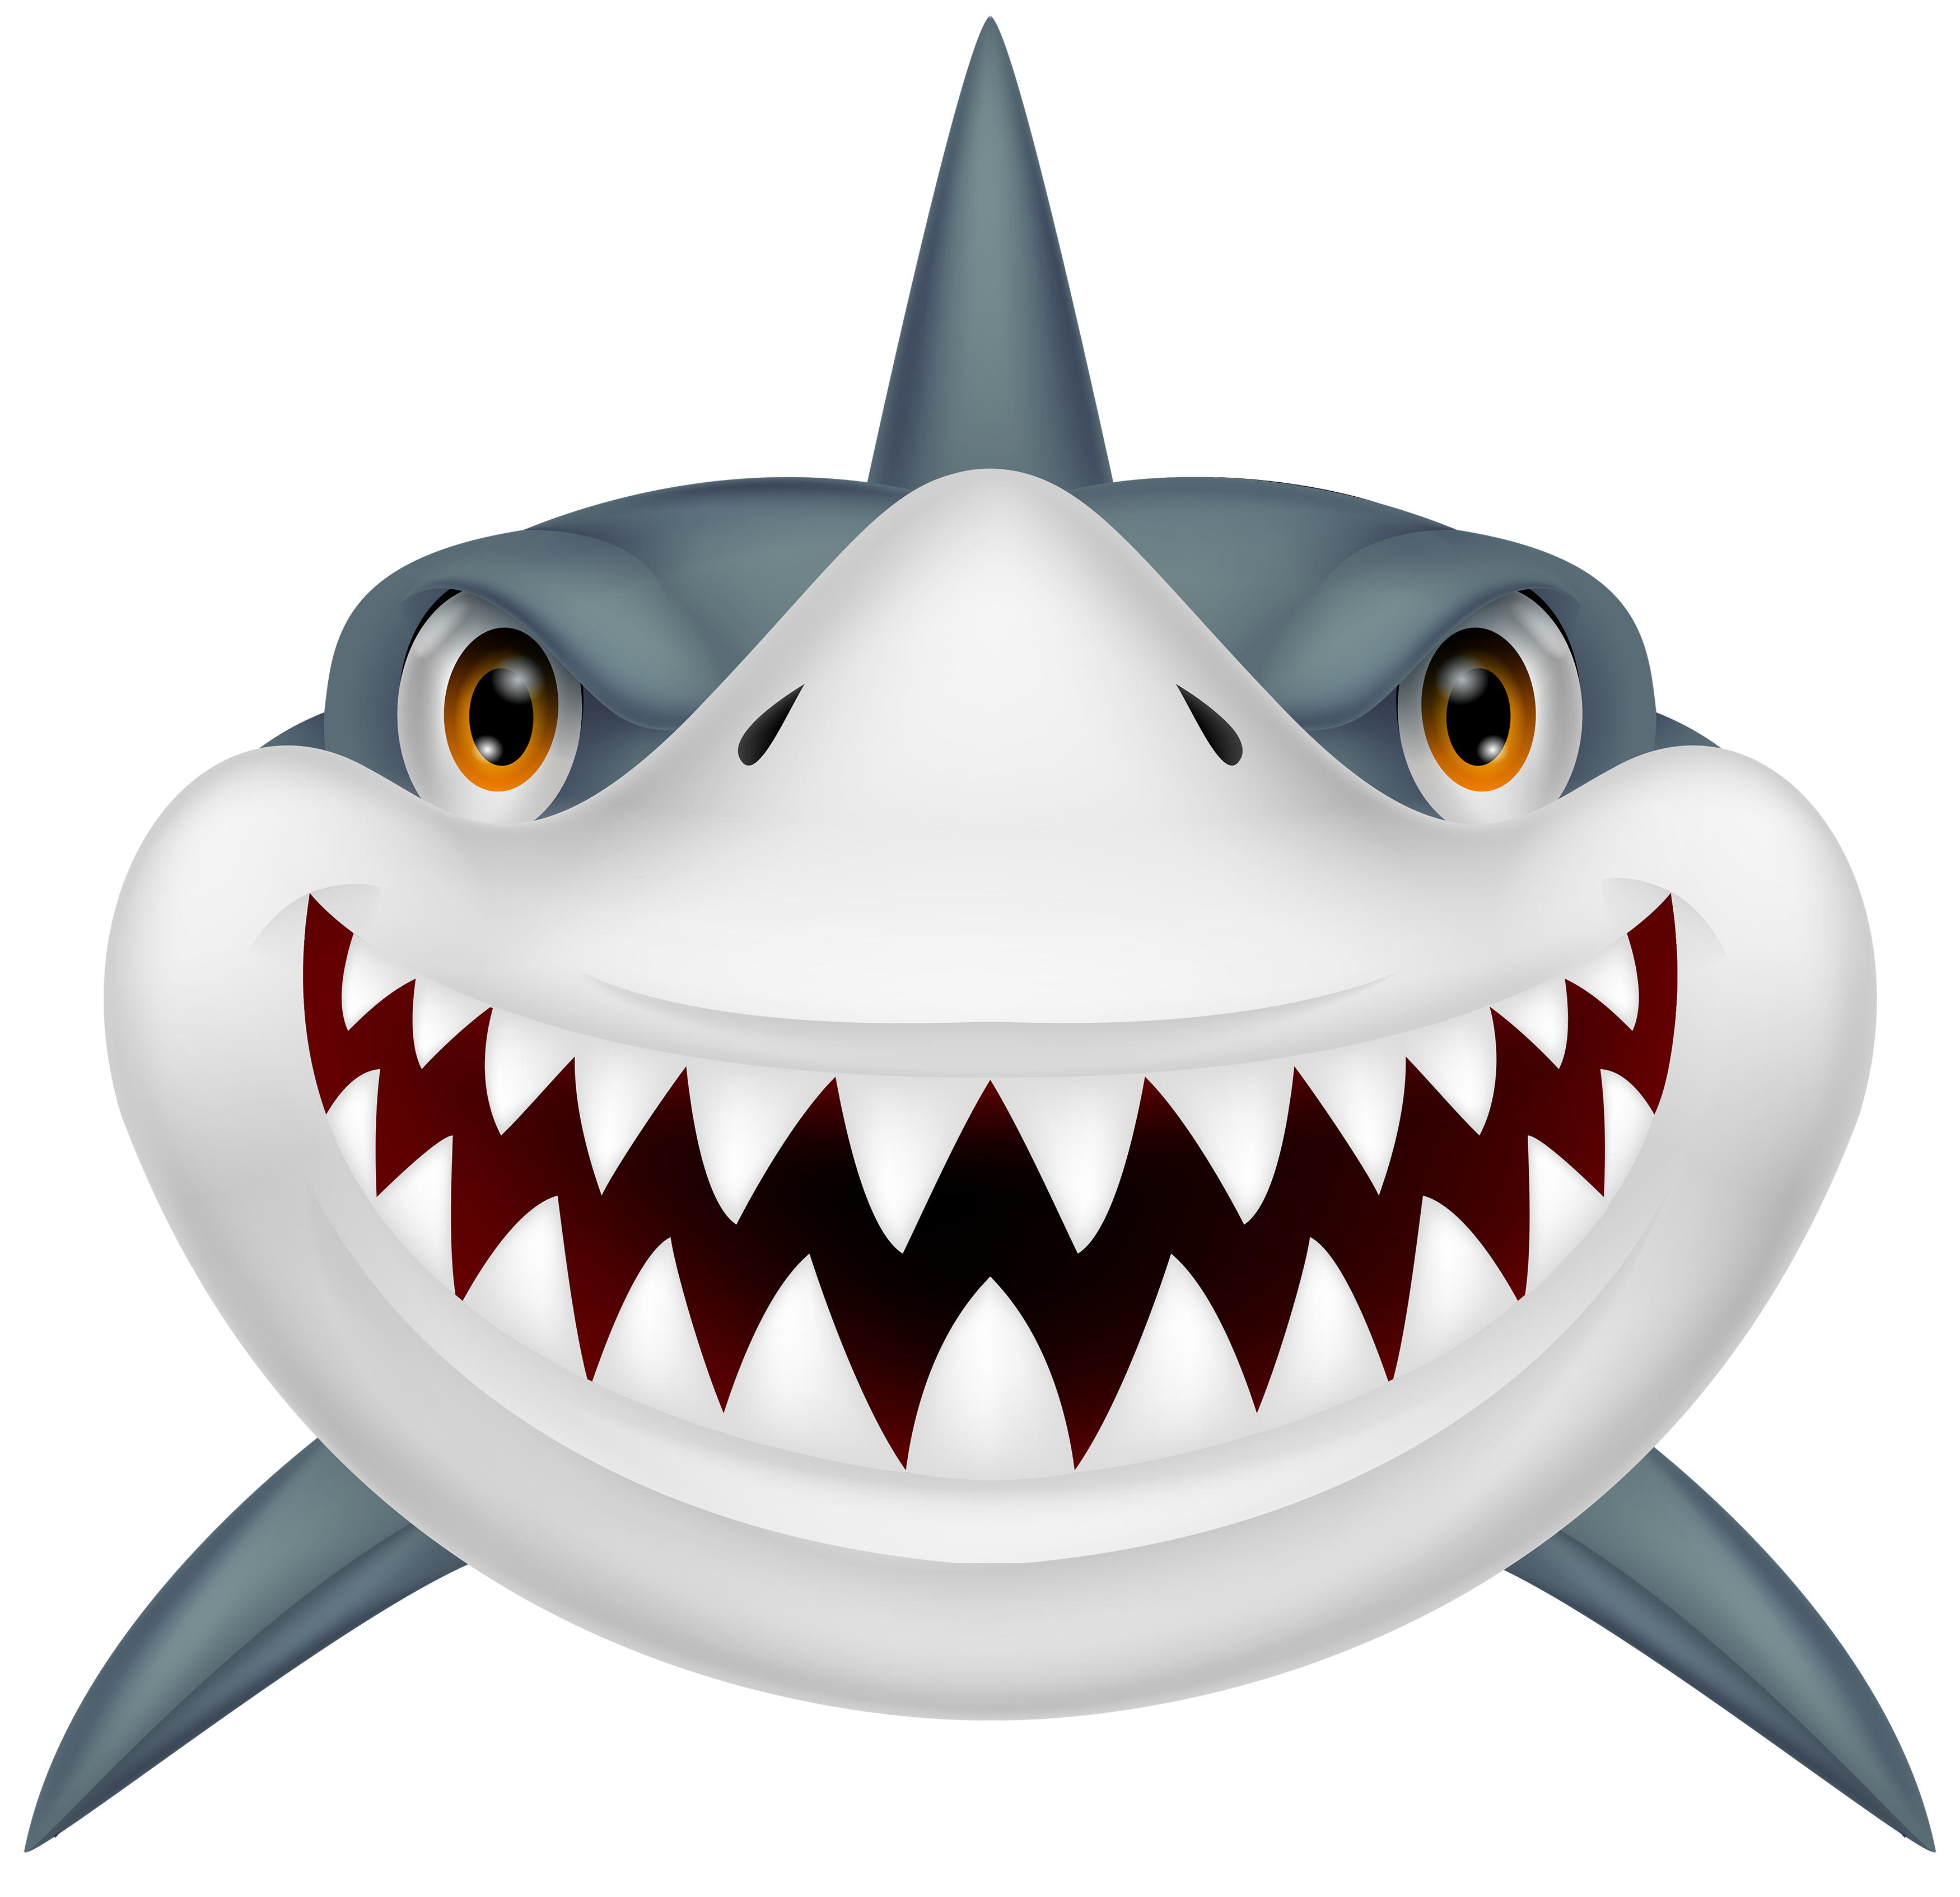 royalty free download Shark clipart. Scary png best web.